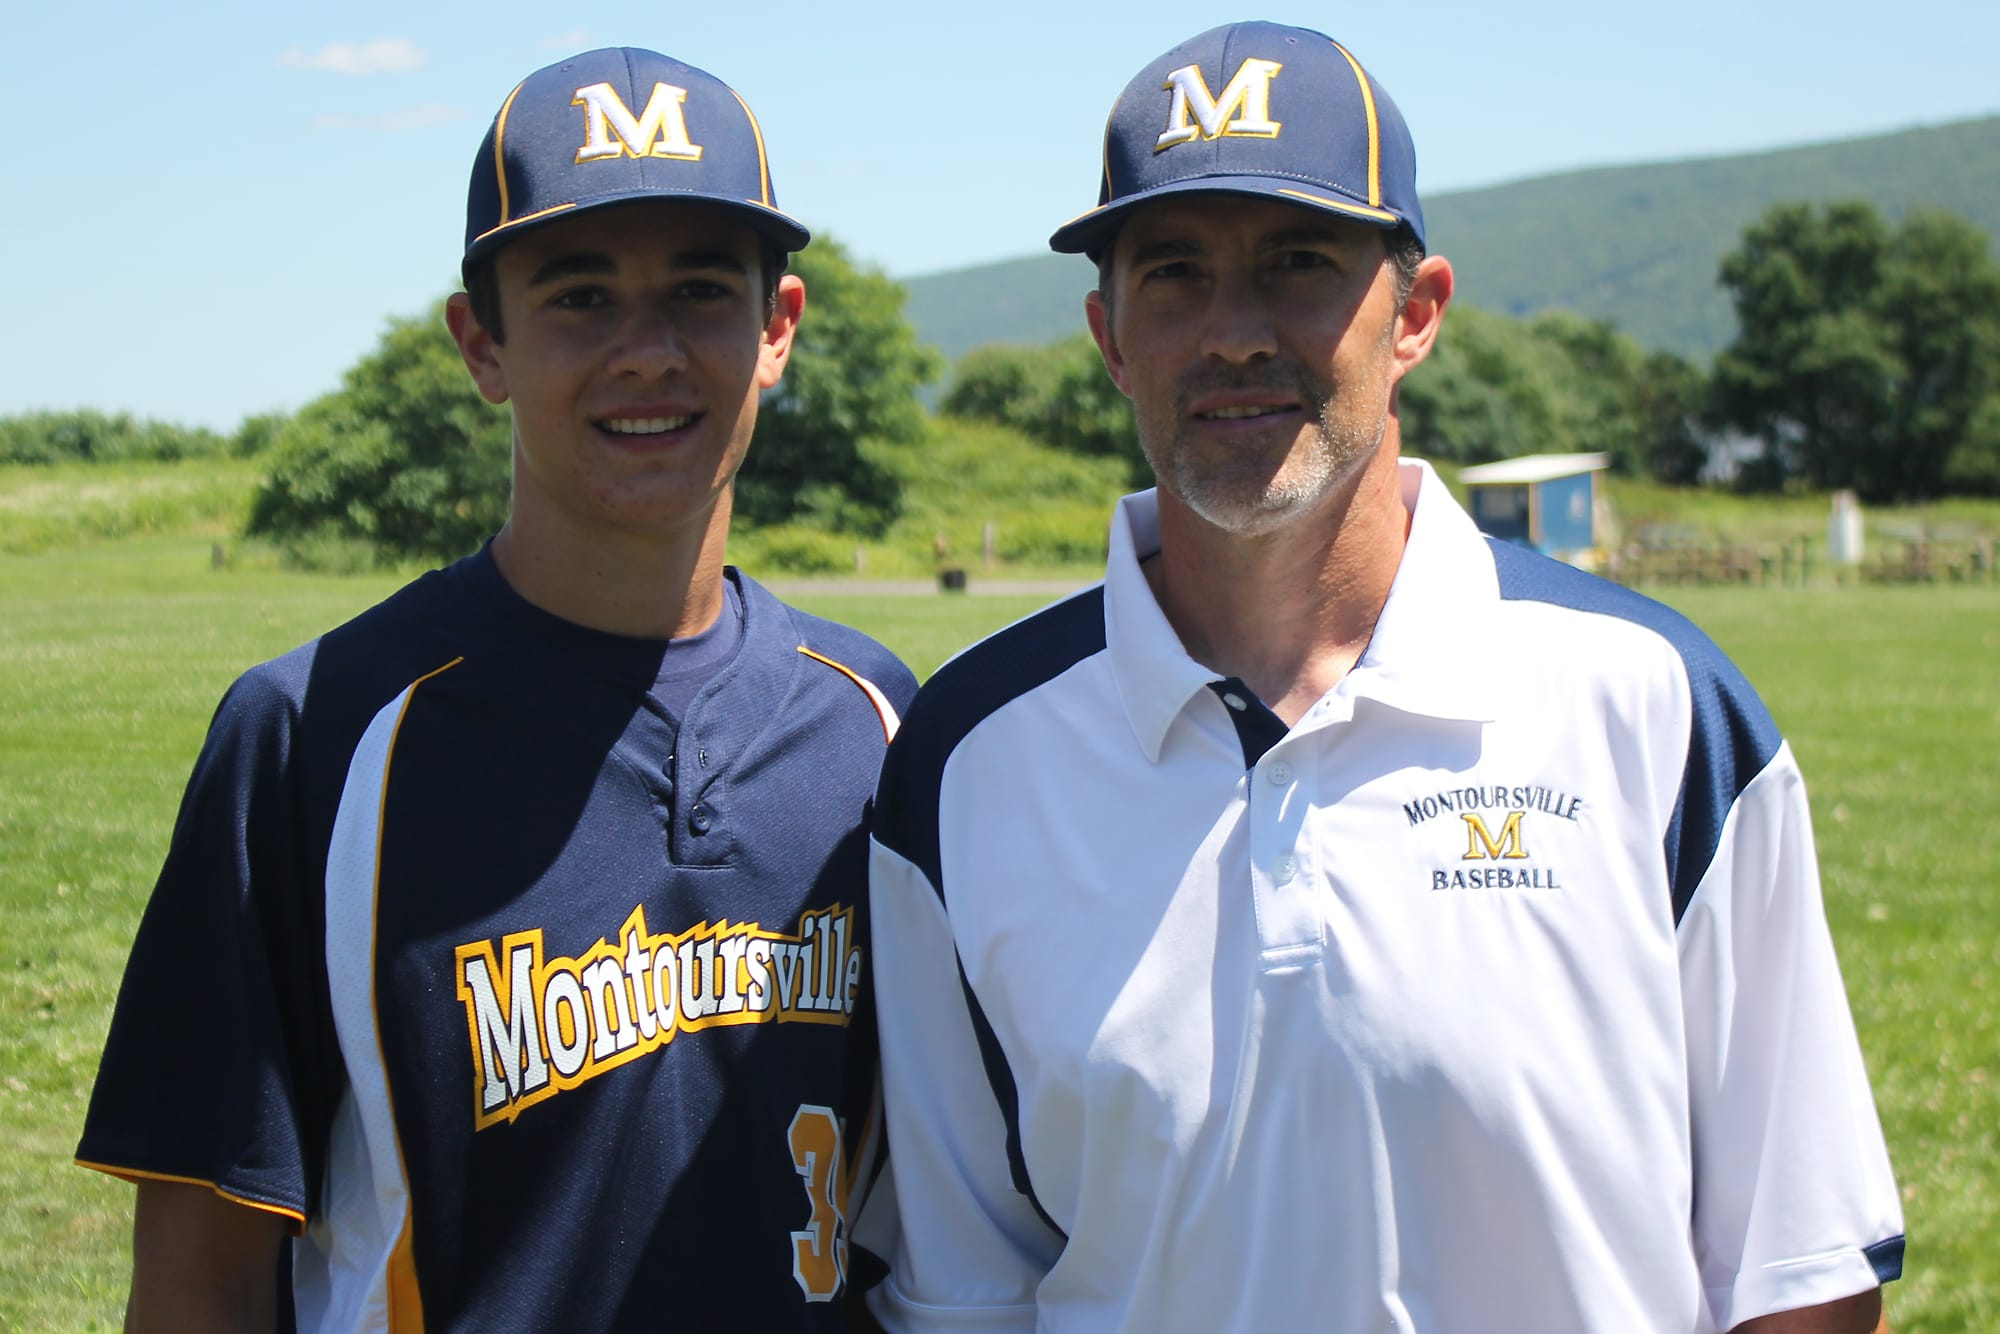 Mike Mussina and his oldest son, Brycen.